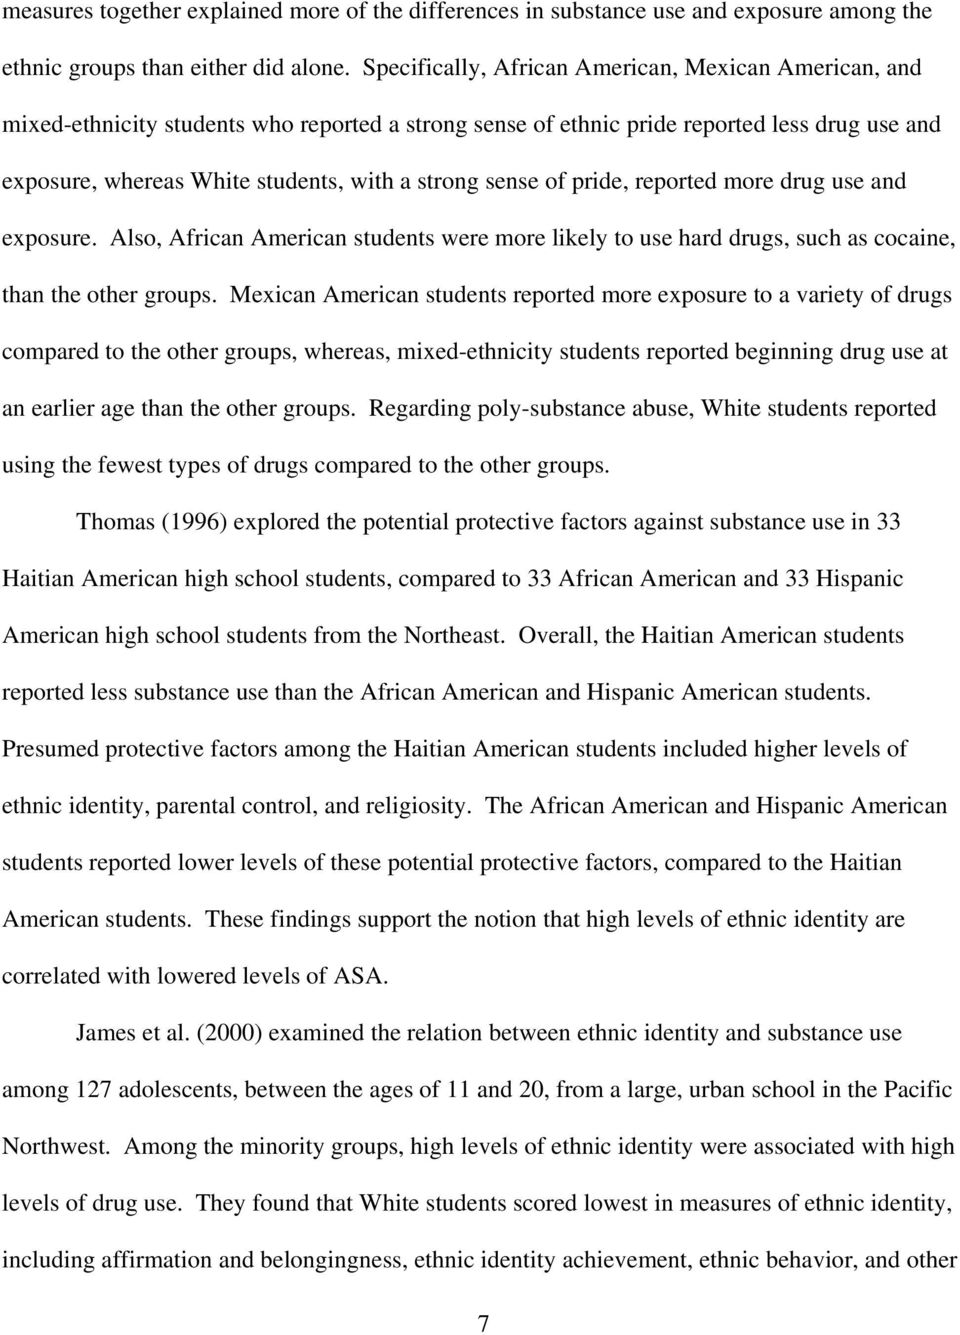 sense of pride, reported more drug use and exposure. Also, African American students were more likely to use hard drugs, such as cocaine, than the other groups.